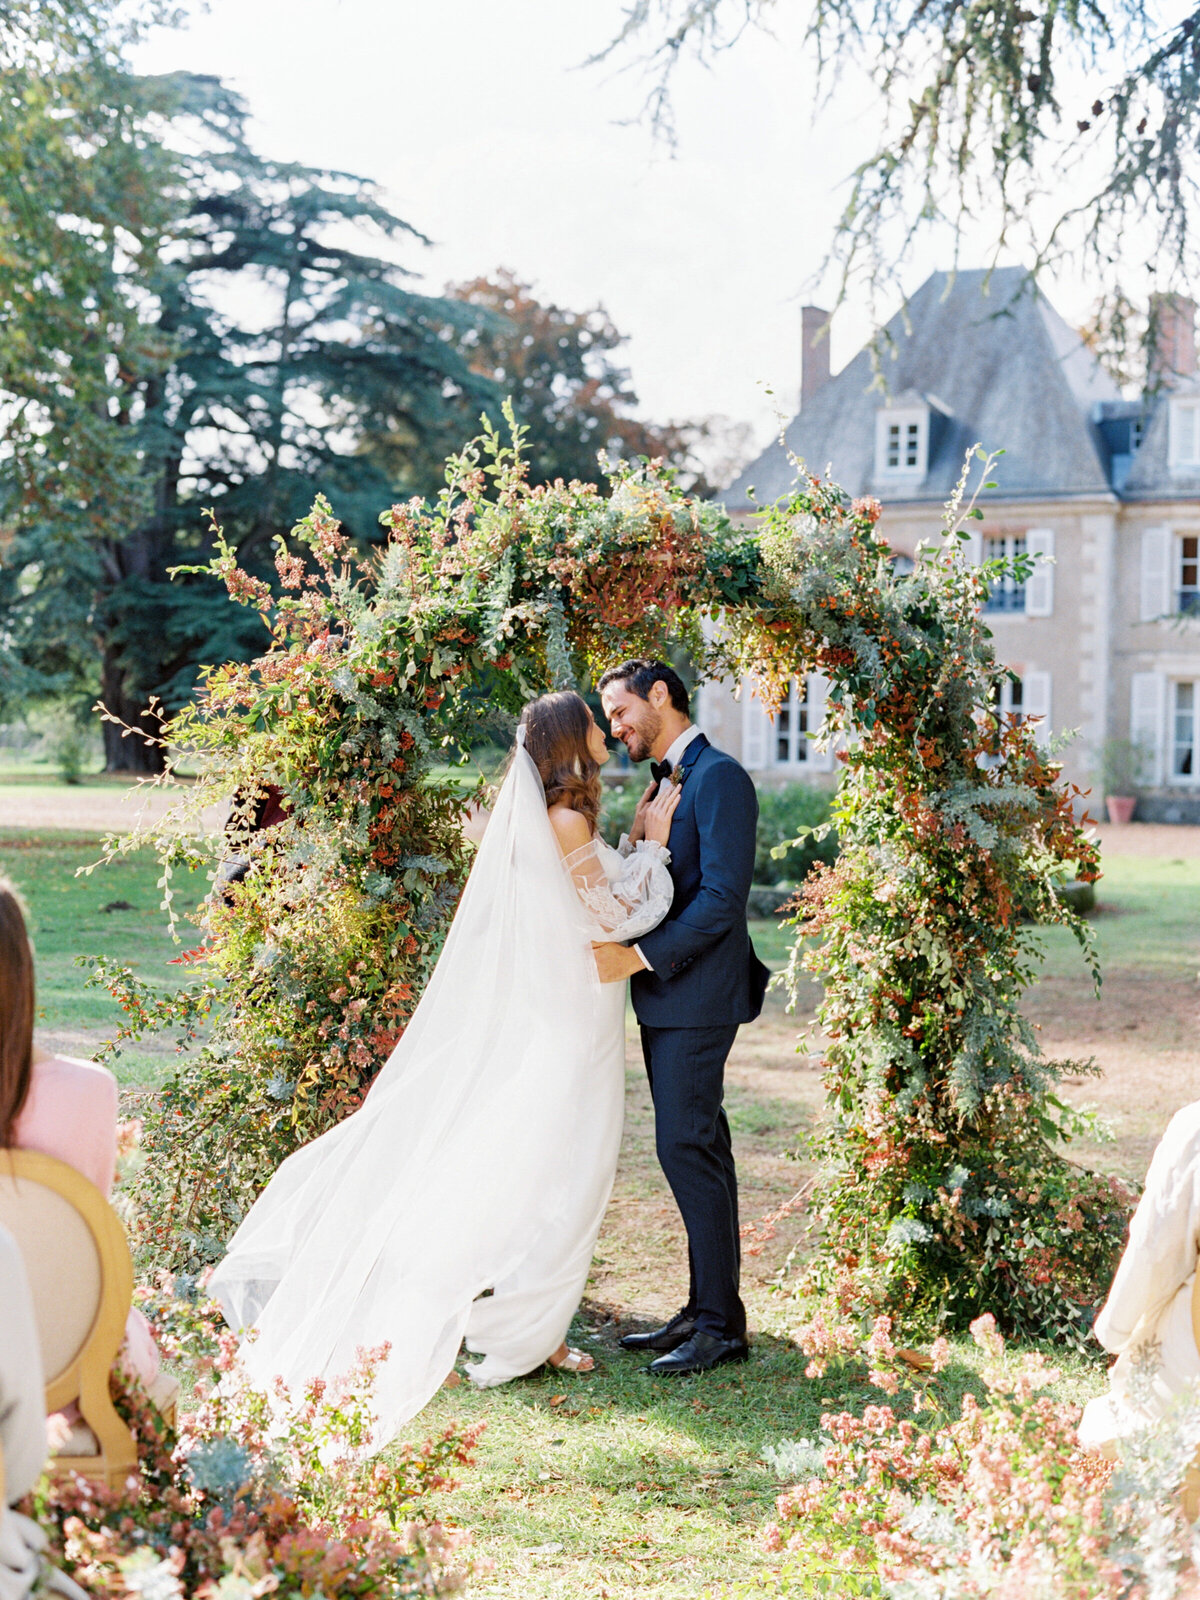 chateau-bouthonvilliers-wedding-paris-wedding-photographer-mackenzie-reiter-photography-66